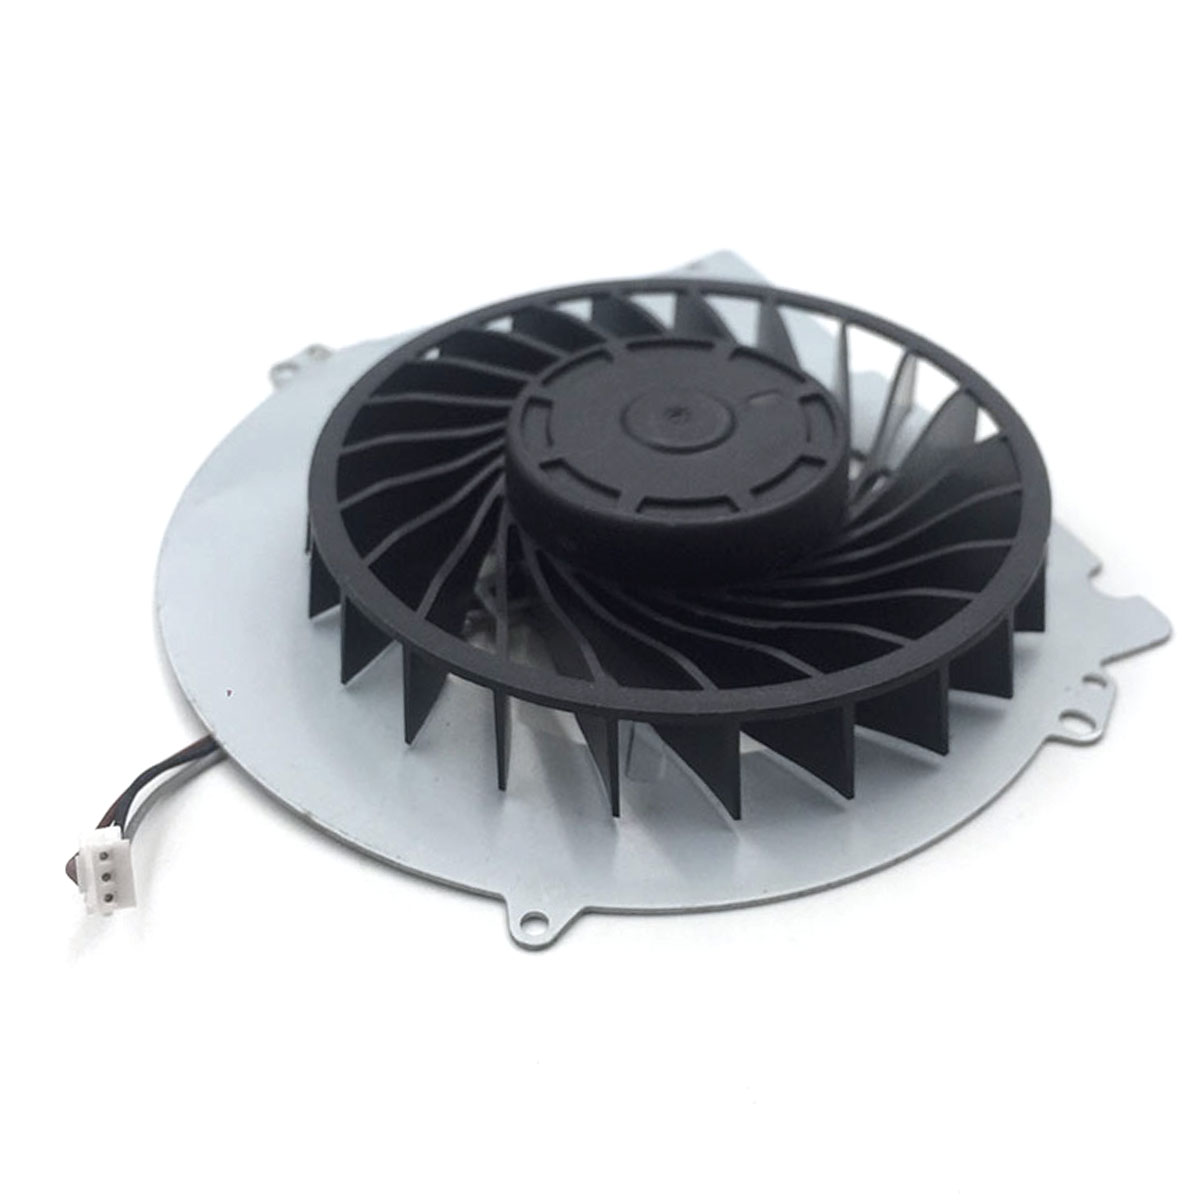 Replacement Internal Cooling Fan For Playstation 4 PS4 Slim CUH-2000